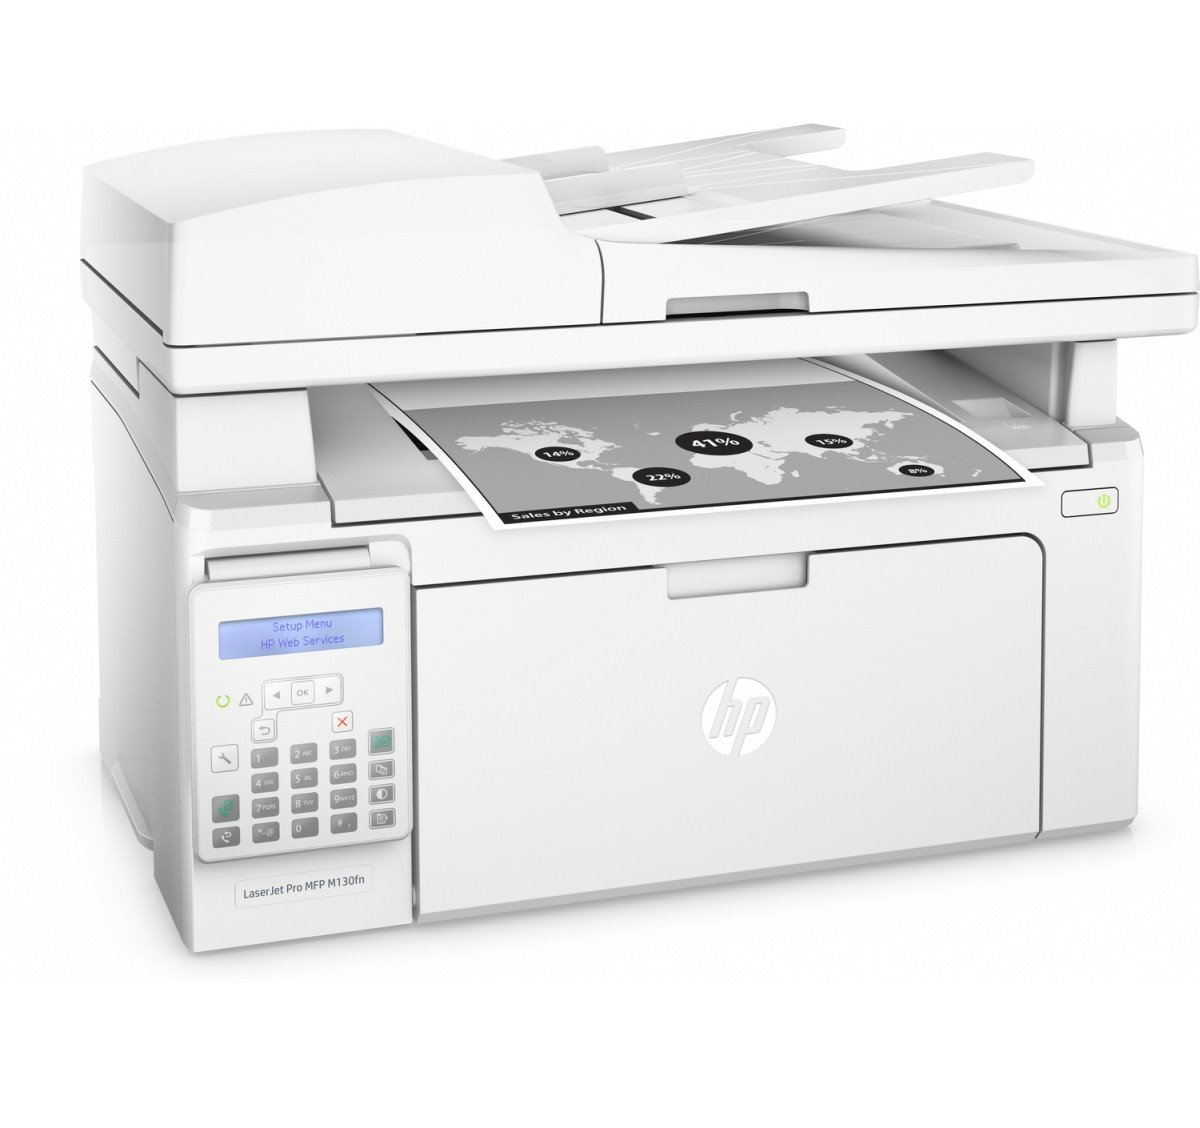 HP LaserJet Pro MFP M130fn (A4, 22ppm, USB, Ethernet, Print/Scan/Copy/Fax)